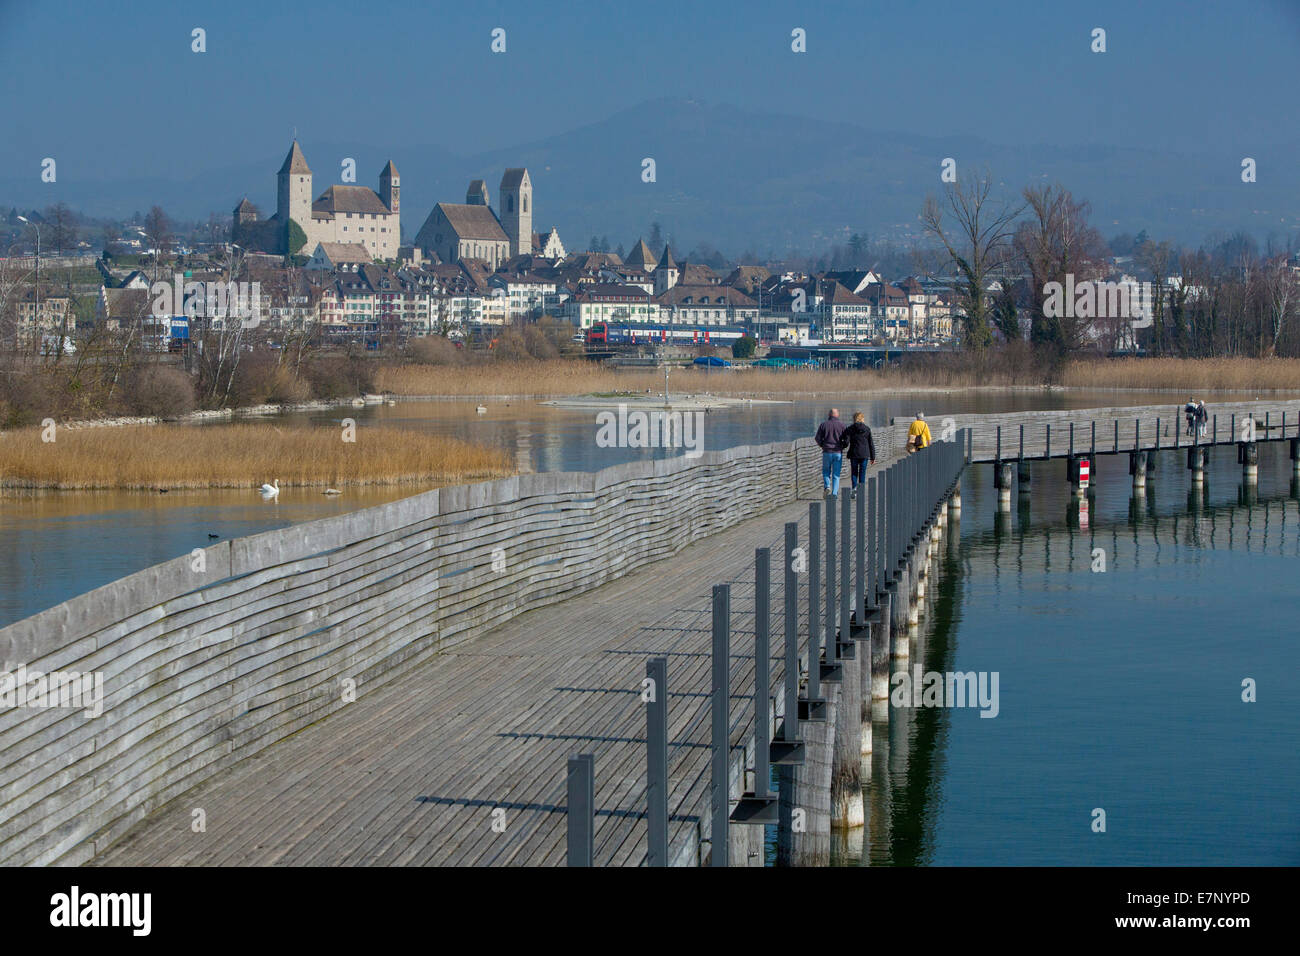 Zurich lake, Jakob's way, wooden footbridge, Rapperswil SG, spring, lake, lakes, town, city, SG, canton St. - Stock Image